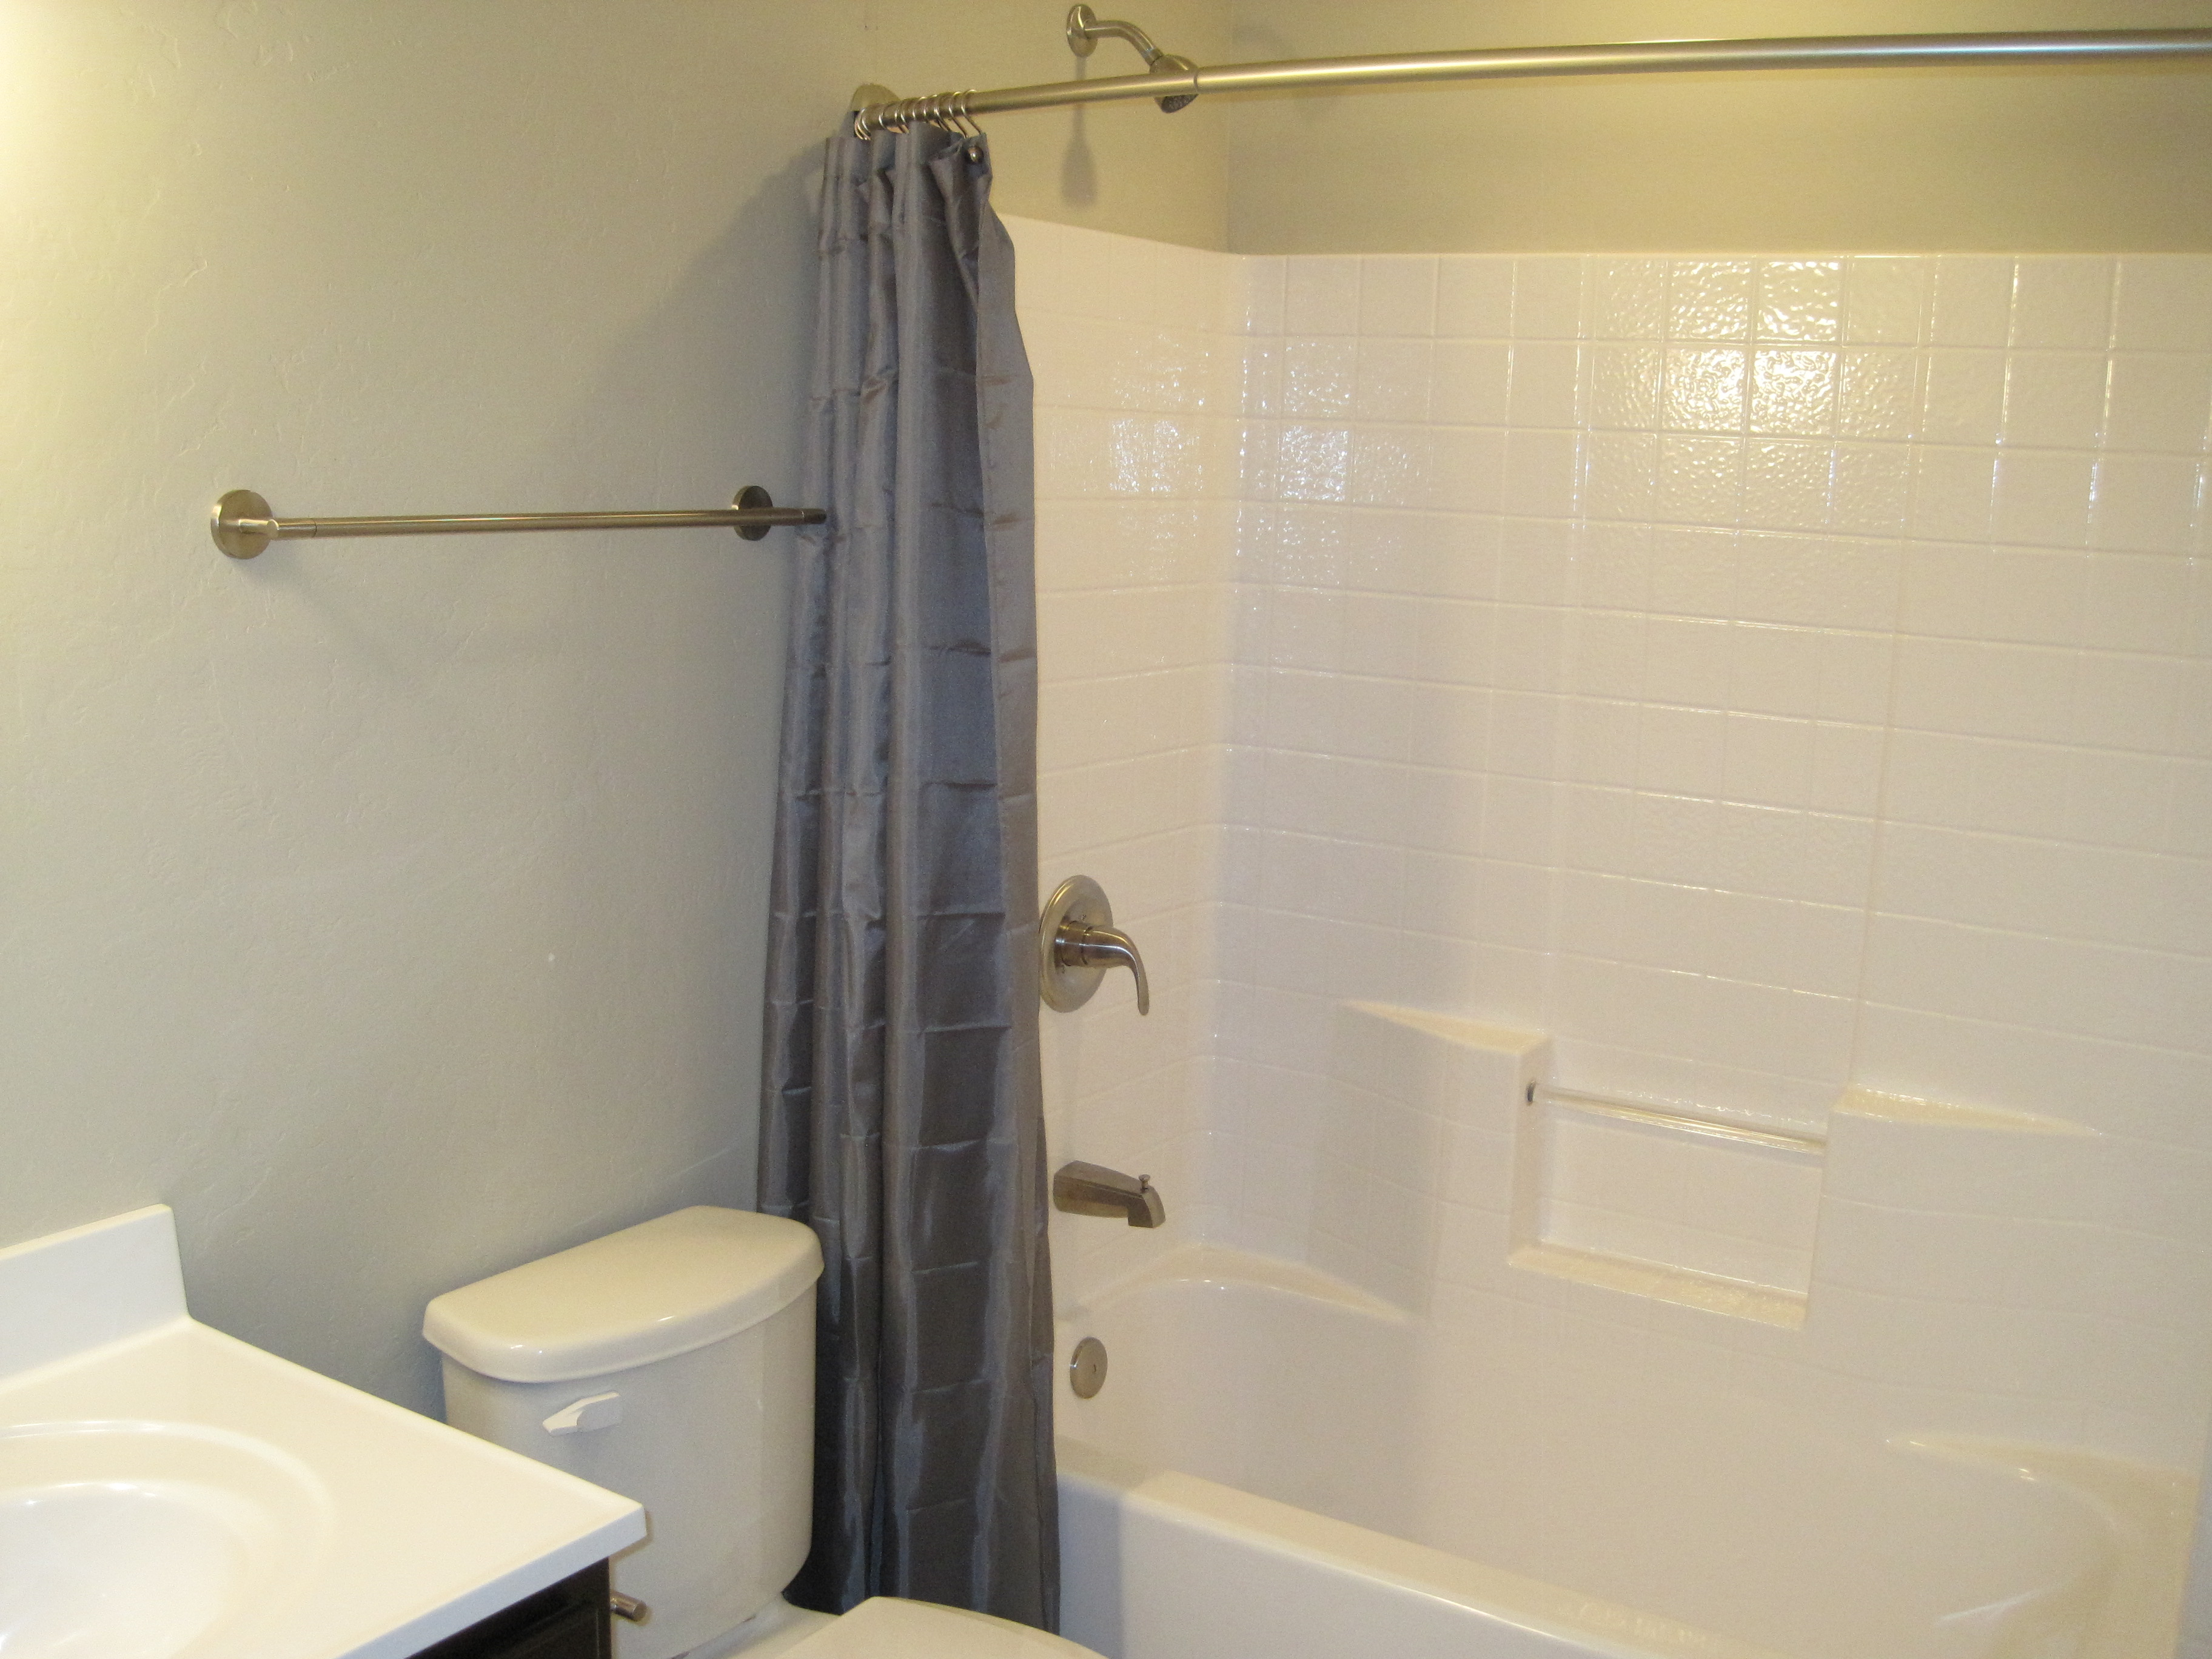 Hotel Shower Curtain Bar in the second bathroom